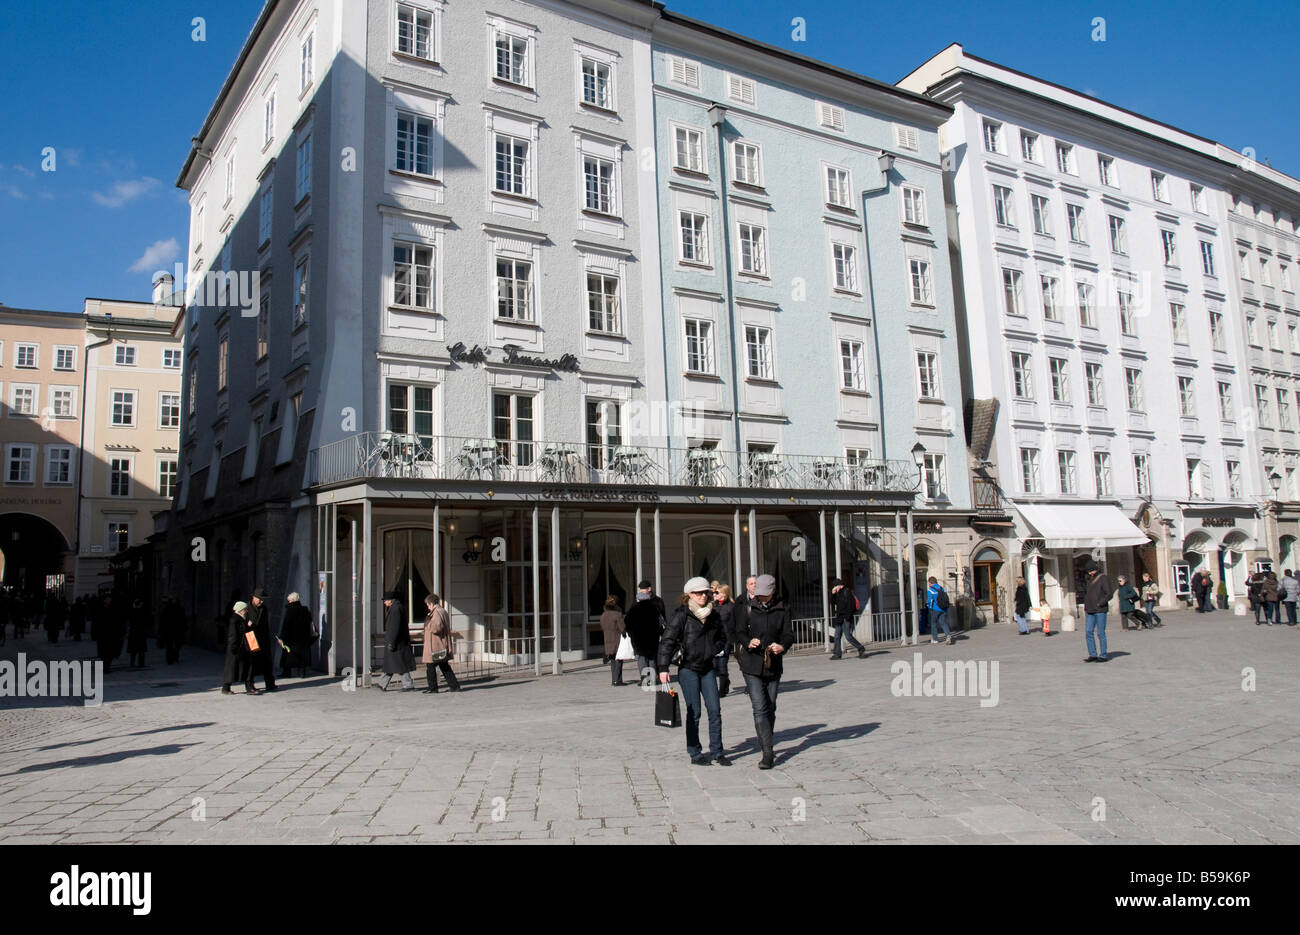 The Alter Markt, a square famous for its good shops, Salzburg, Austria, Europe - Stock Image